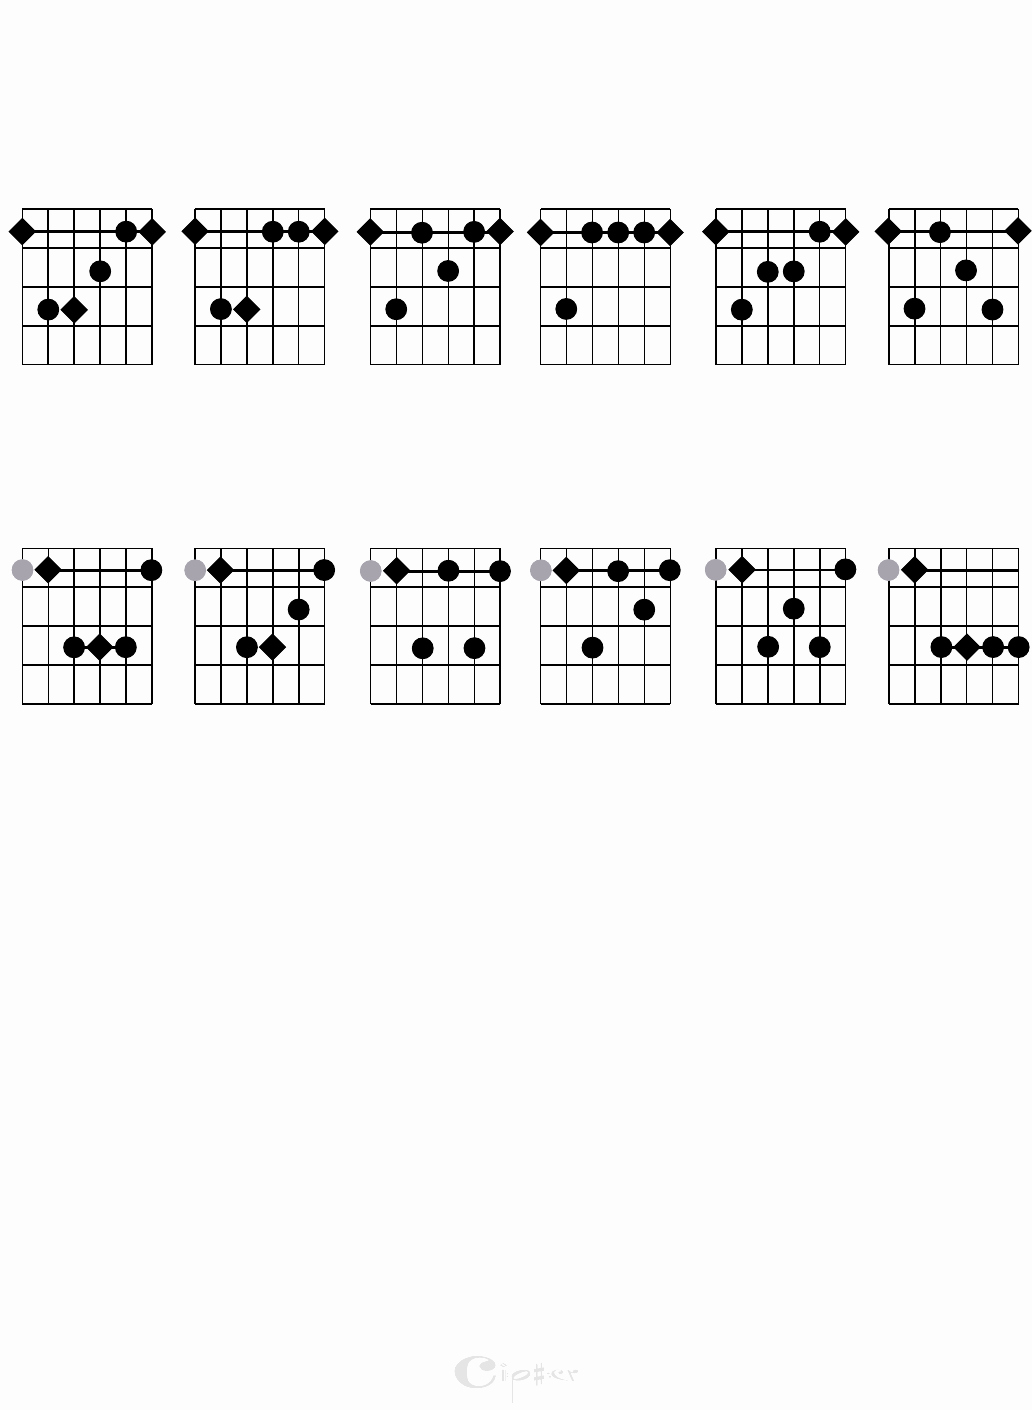 Chord Chart Guitar Complete New Download Sample Plete Guitar Chord Chart for Beginner